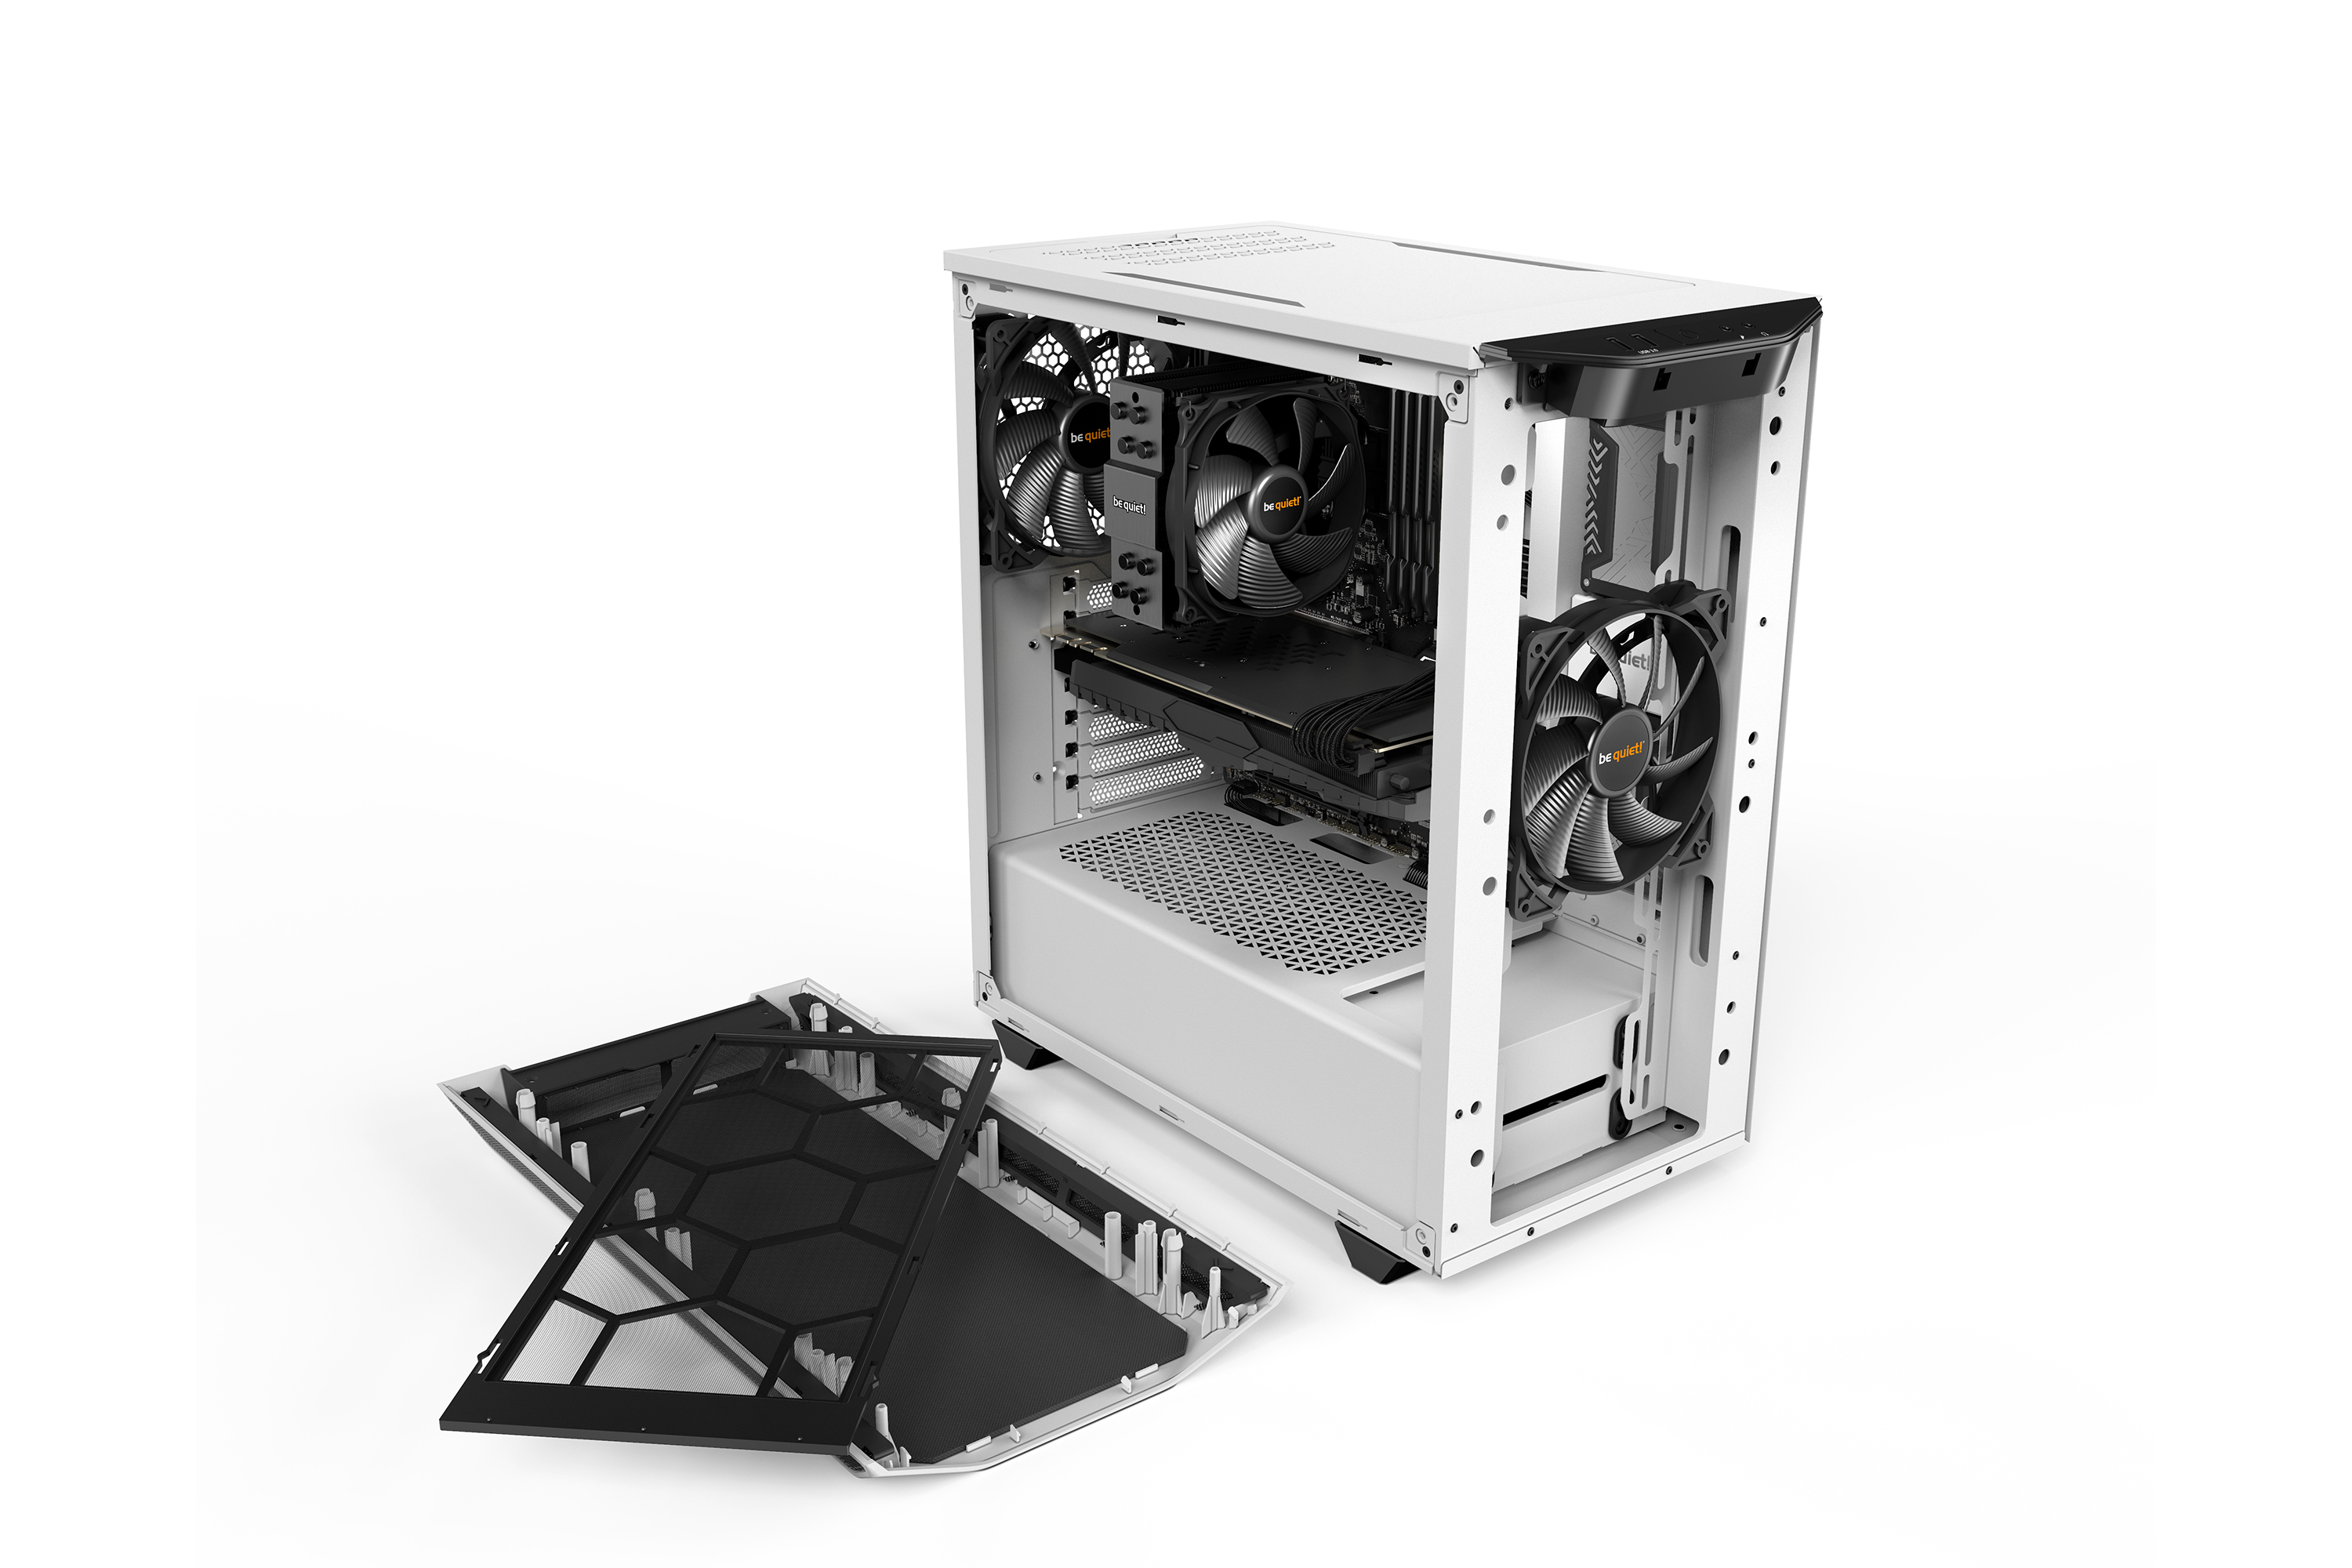 be quiet! Pure Base 500 White, 450 x 231 x 443, IO-panel 2x USB 3.0, HD Audio, 2x 3,5, 5x 2,5, inc 2x 140 mm Pure Wings 2, Watercooling ready